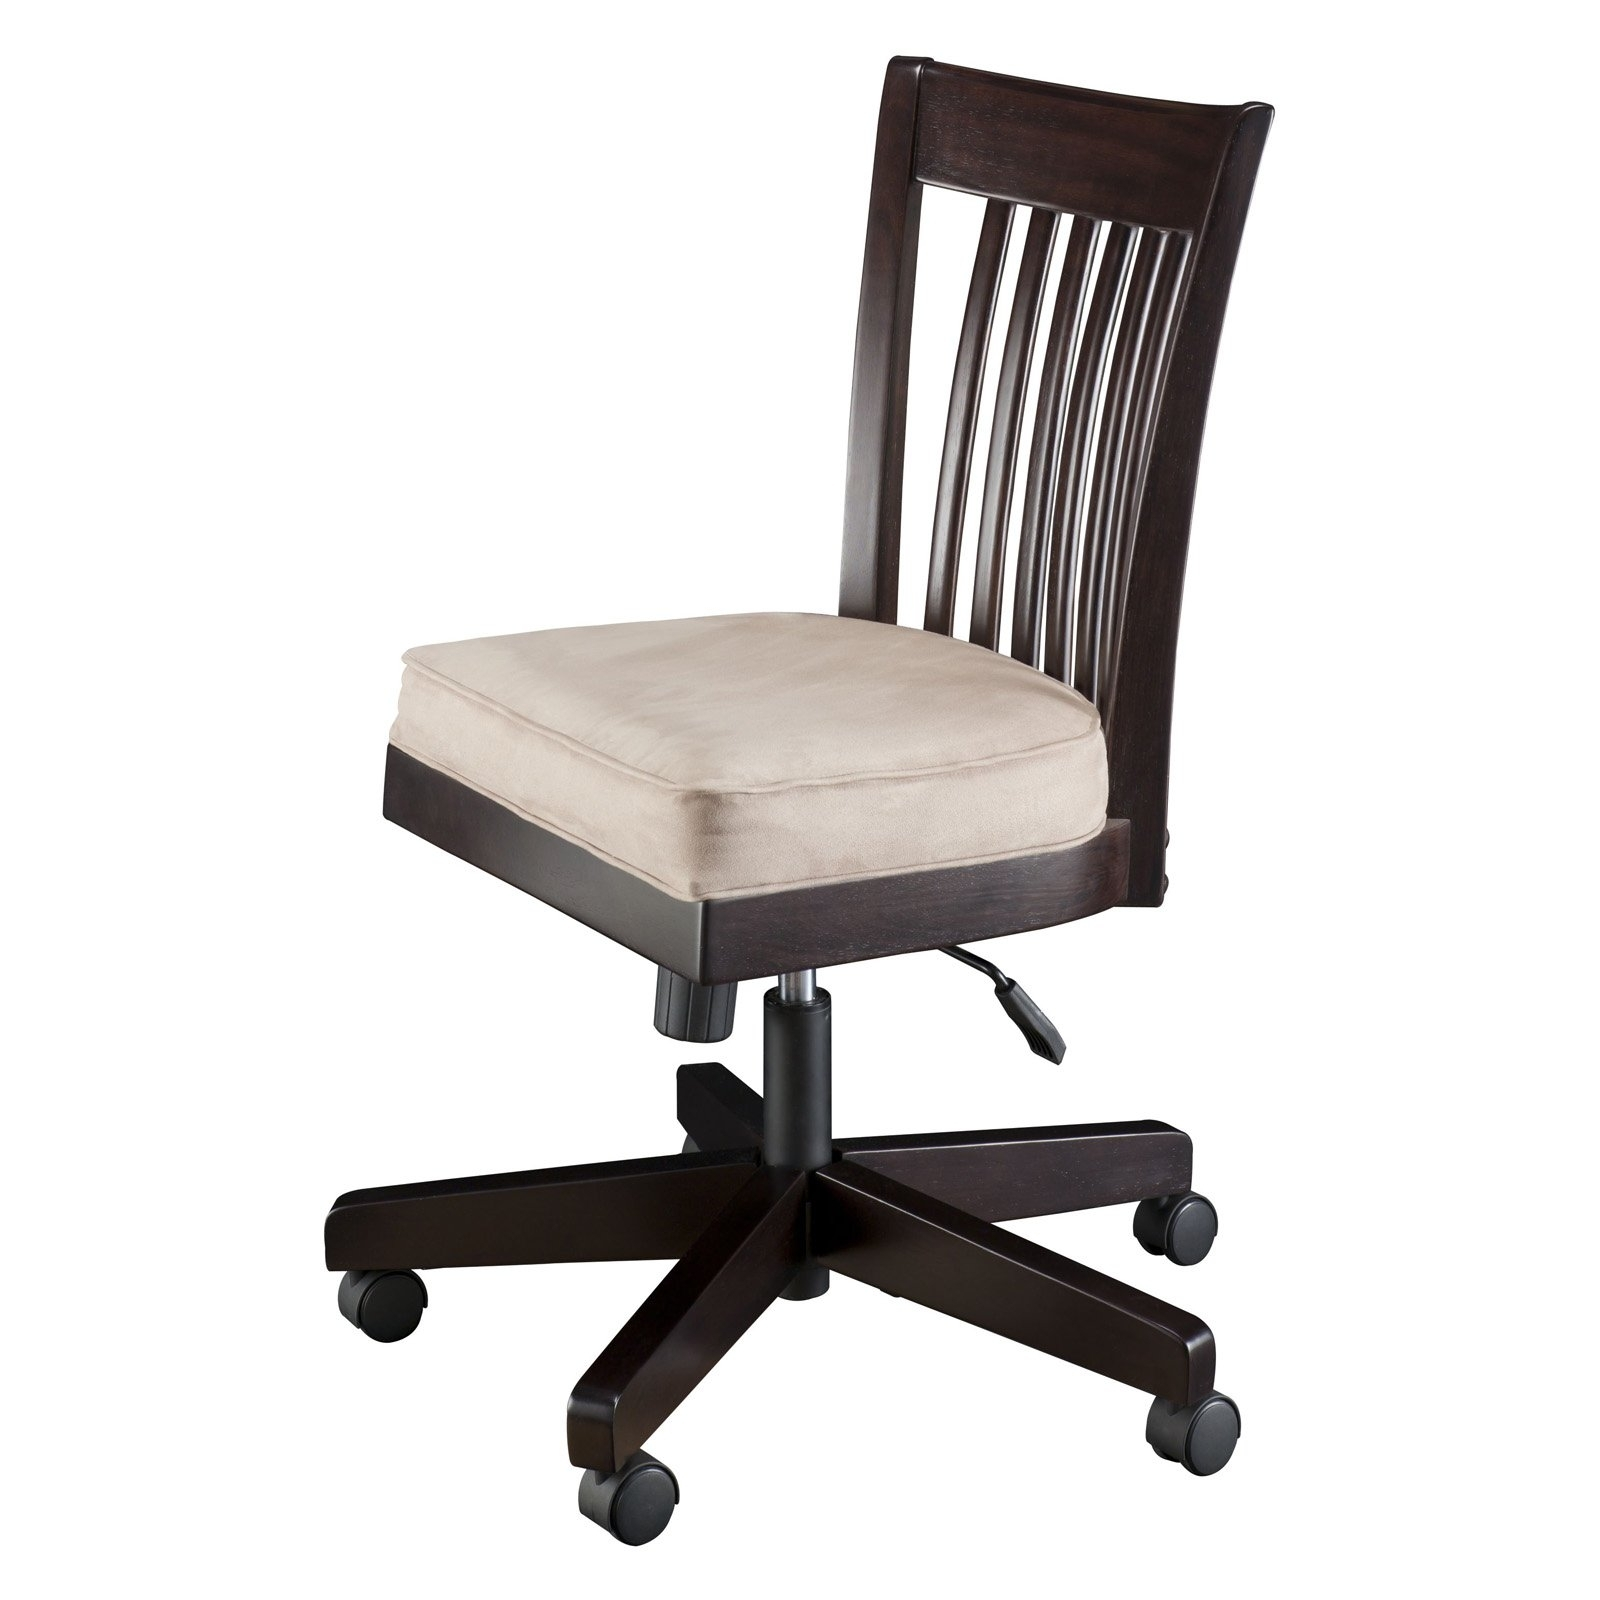 Executive Desk Chair Without Arms With Best And Newest Furniture (View 5 of 20)